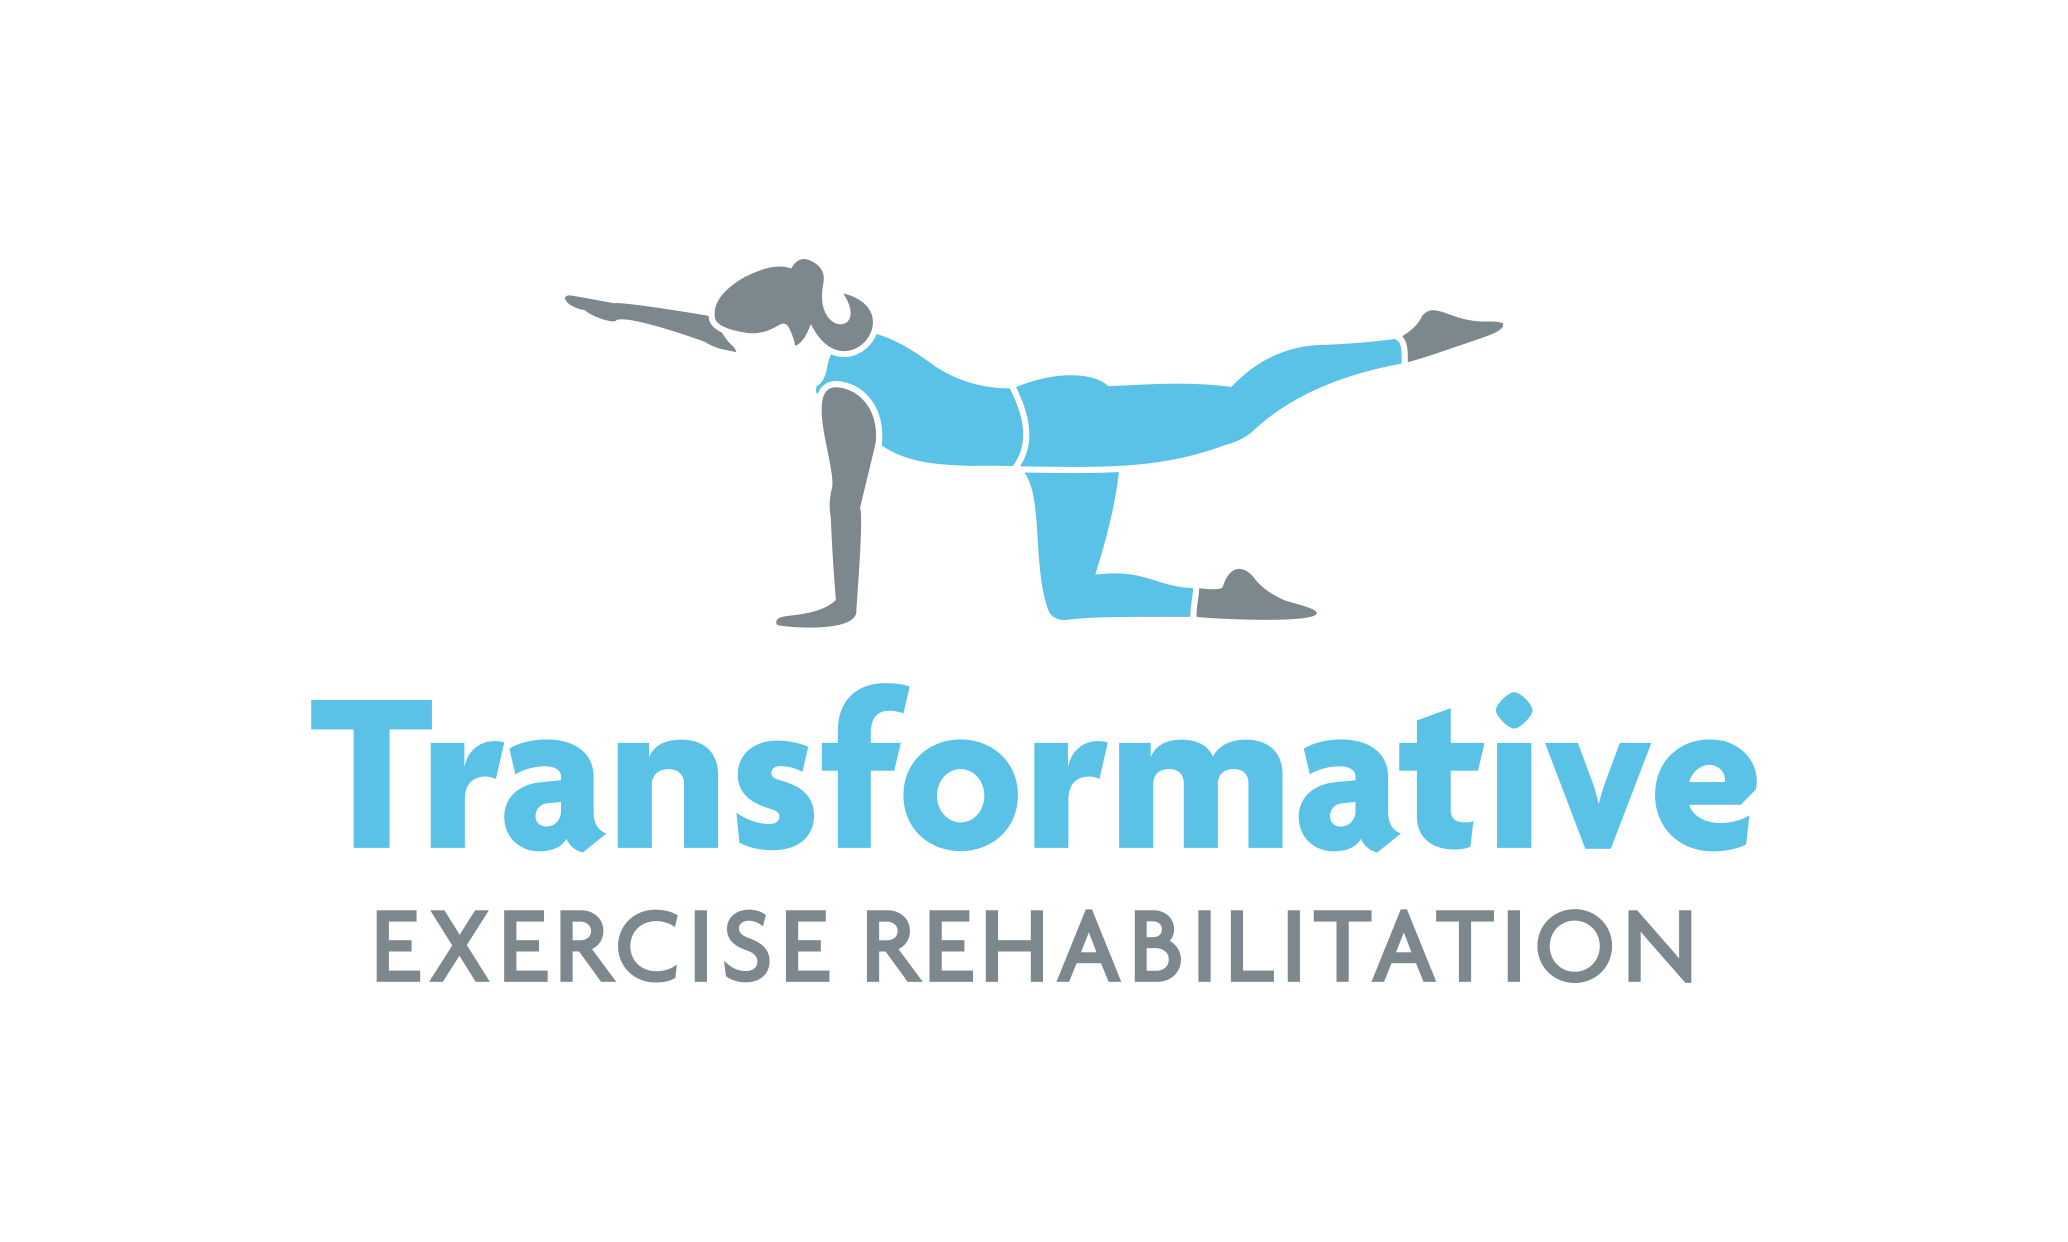 Transformative Exercise Rehabilitation